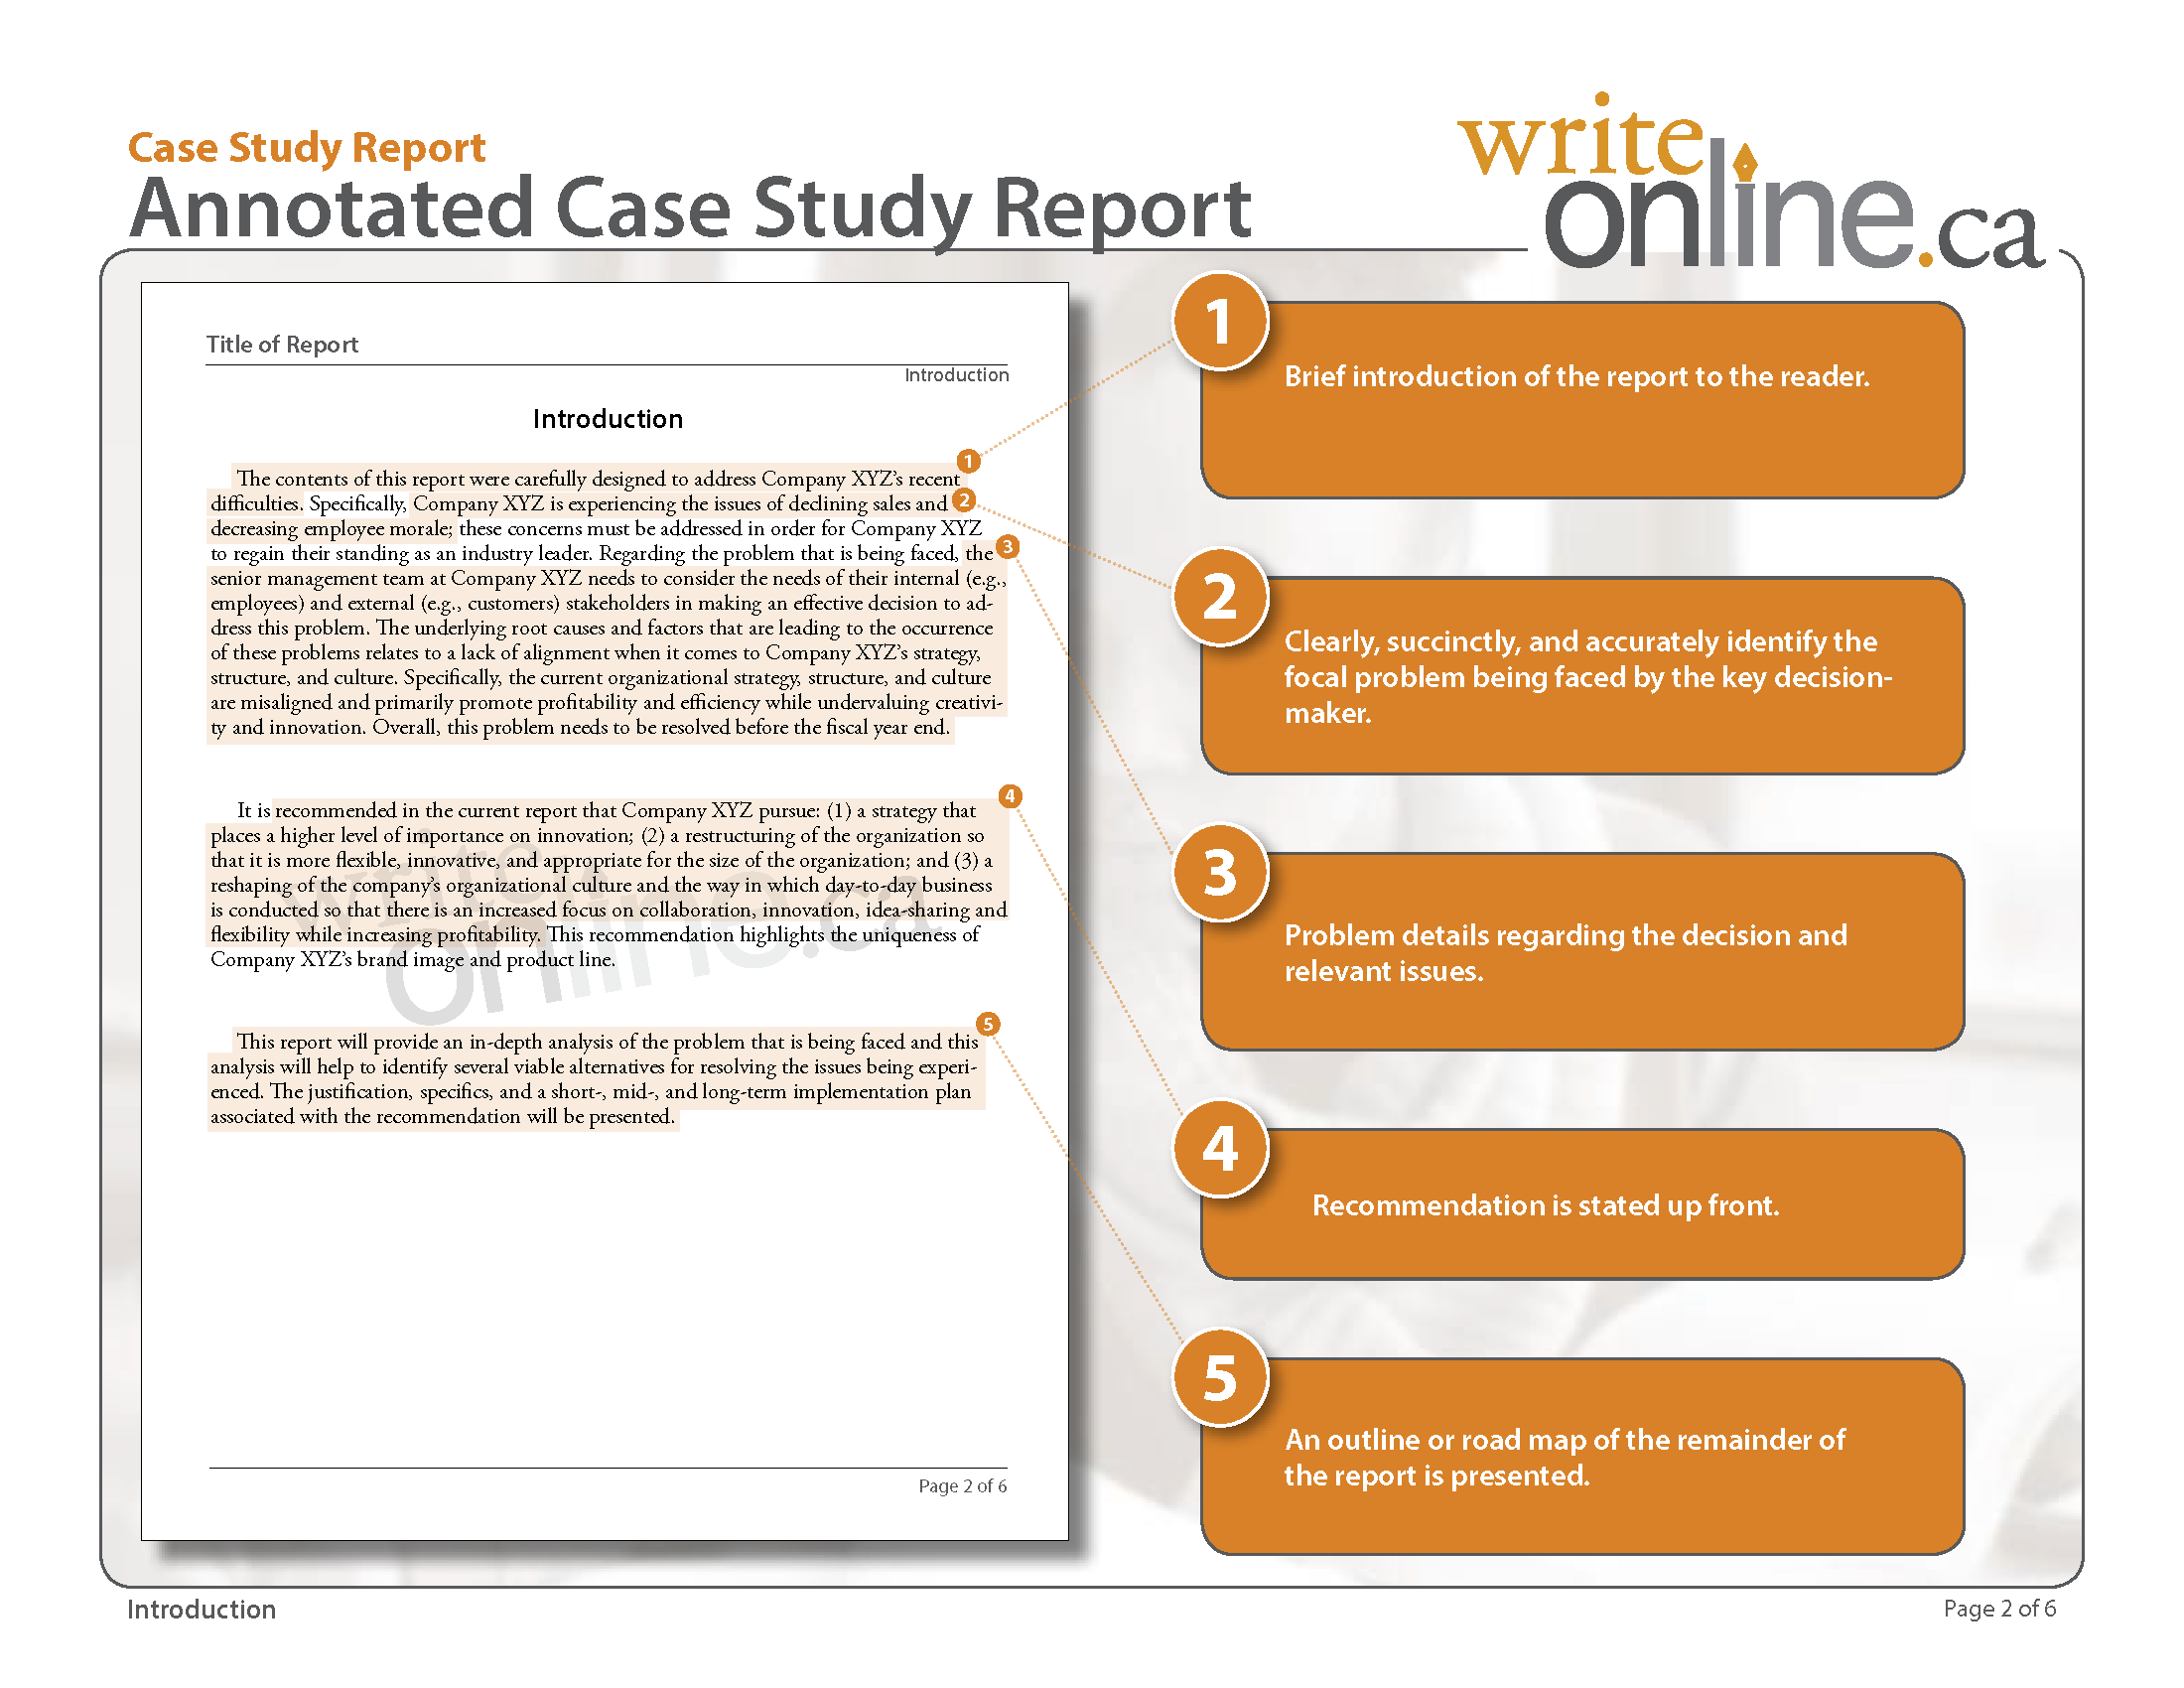 017 Casestudy Annotatedfull Page 2 Parts Of Research Paper High Shocking A School For Students Full